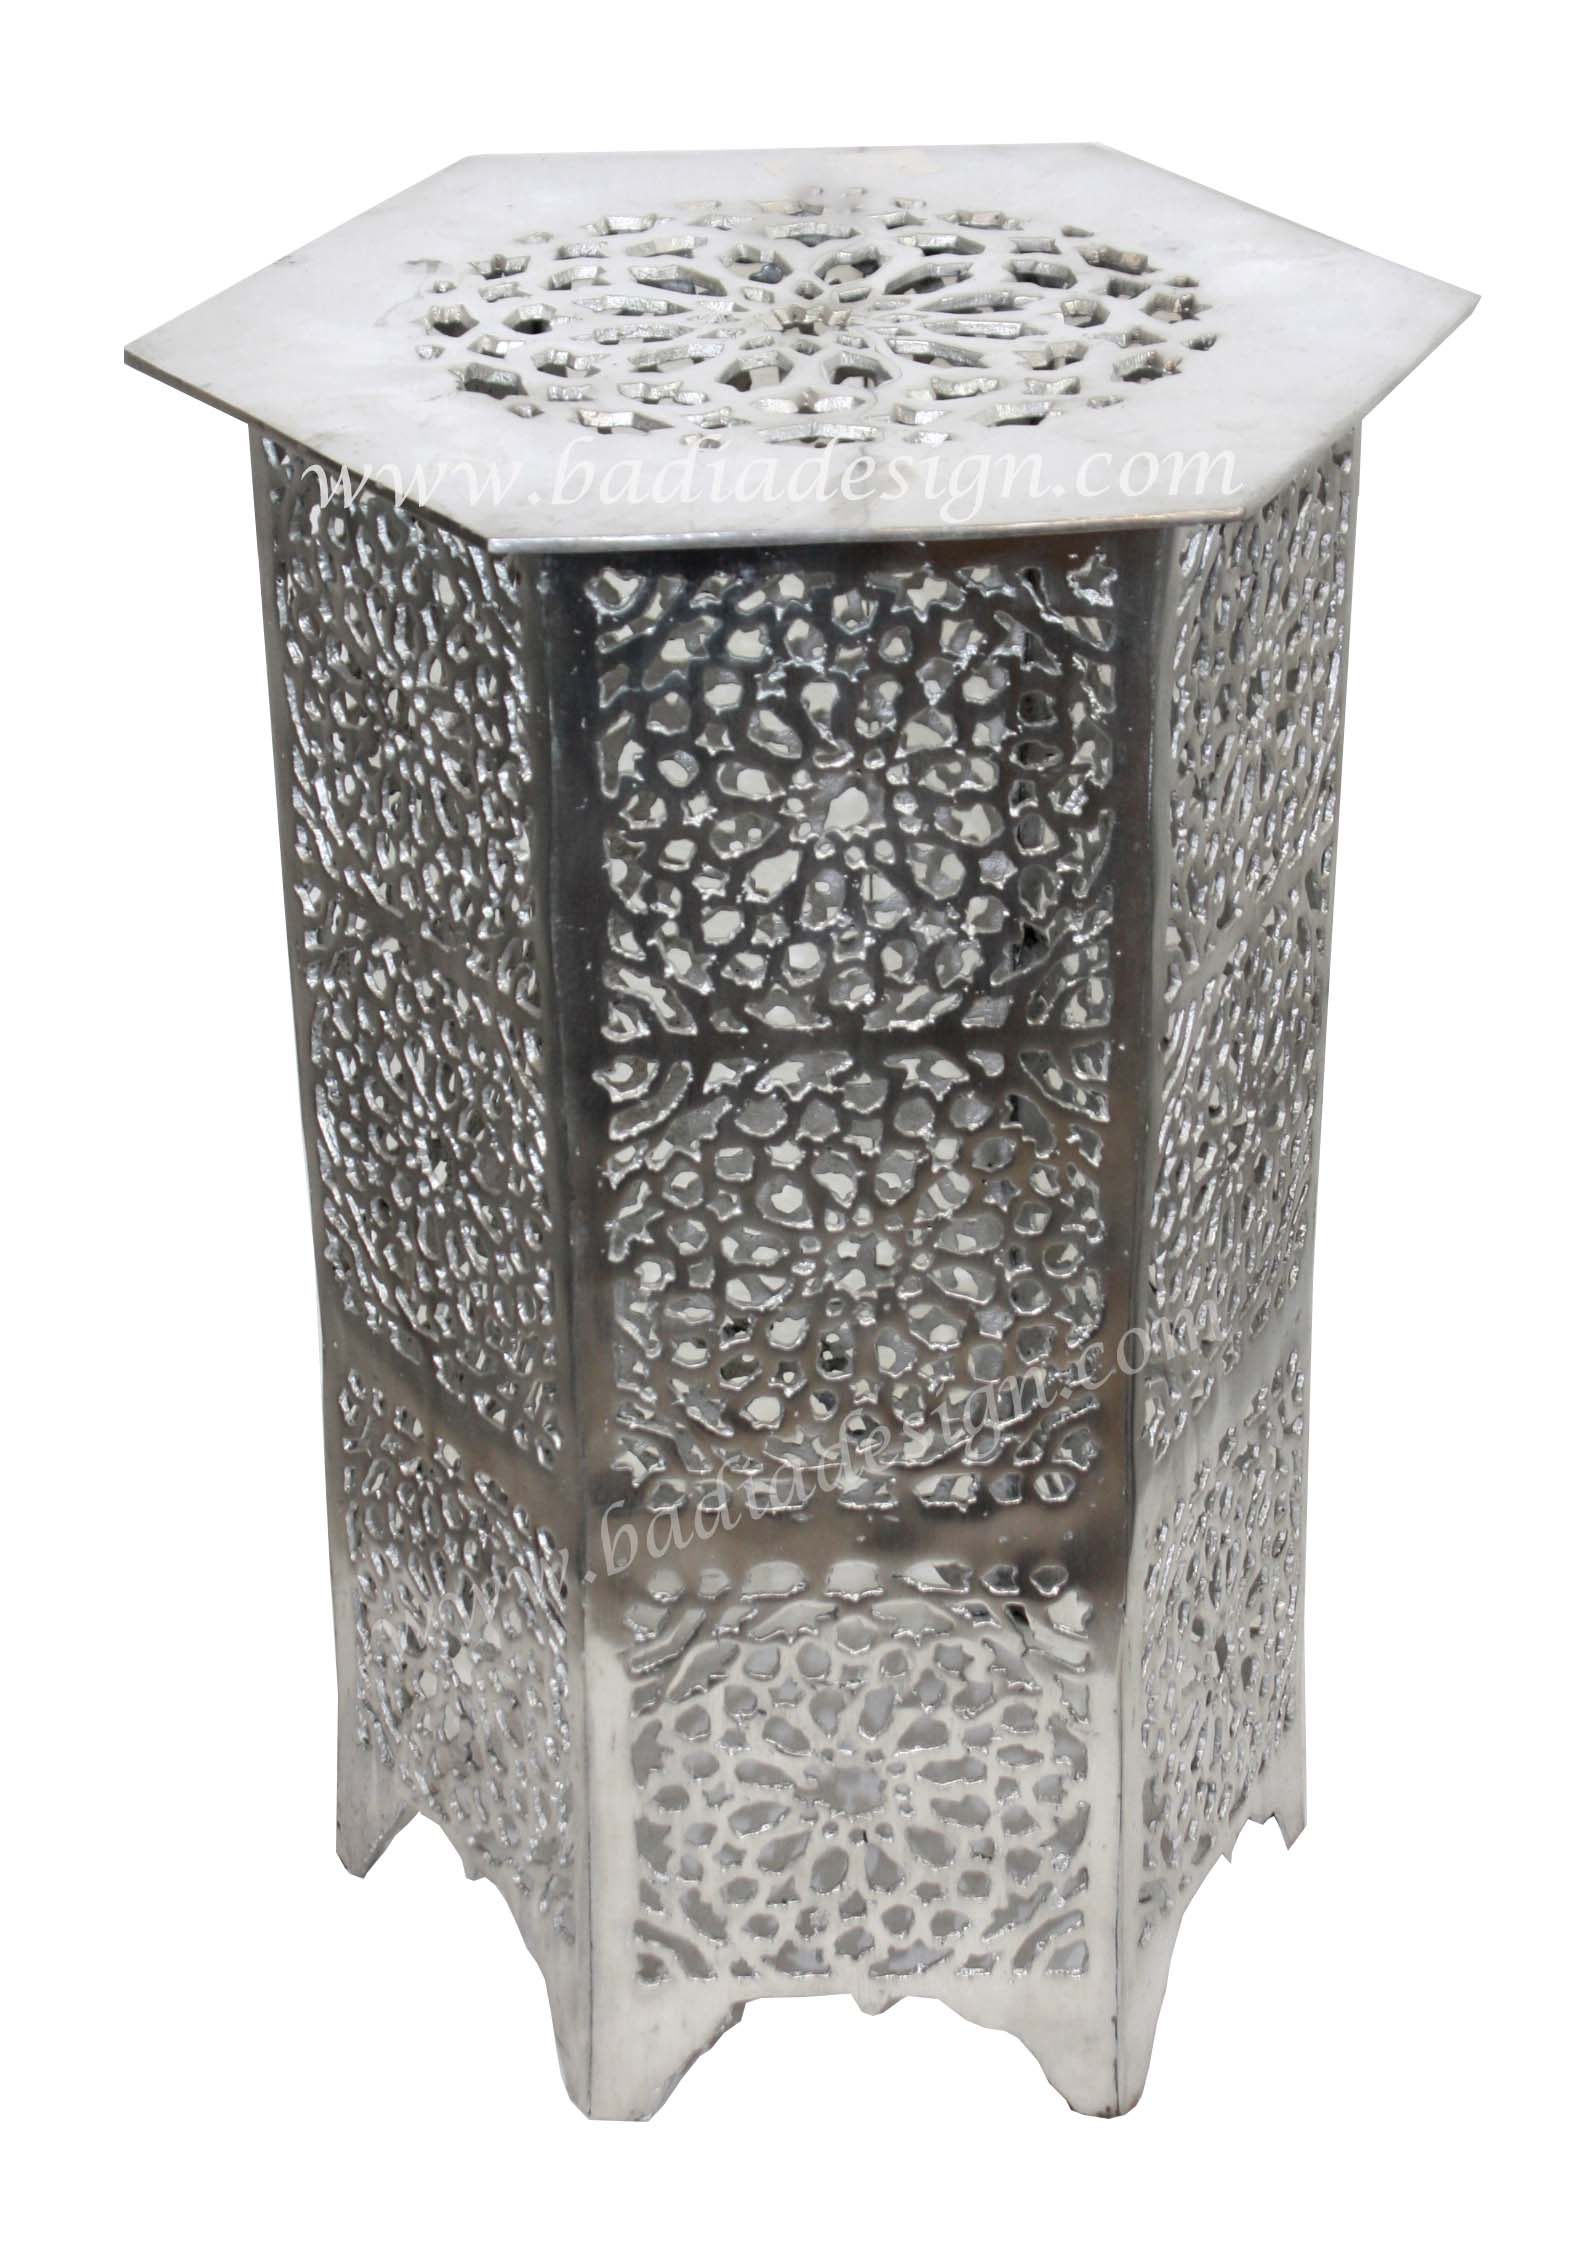 Attractive Moroccan Silver Metal Accent Table From Badia Design Inc.